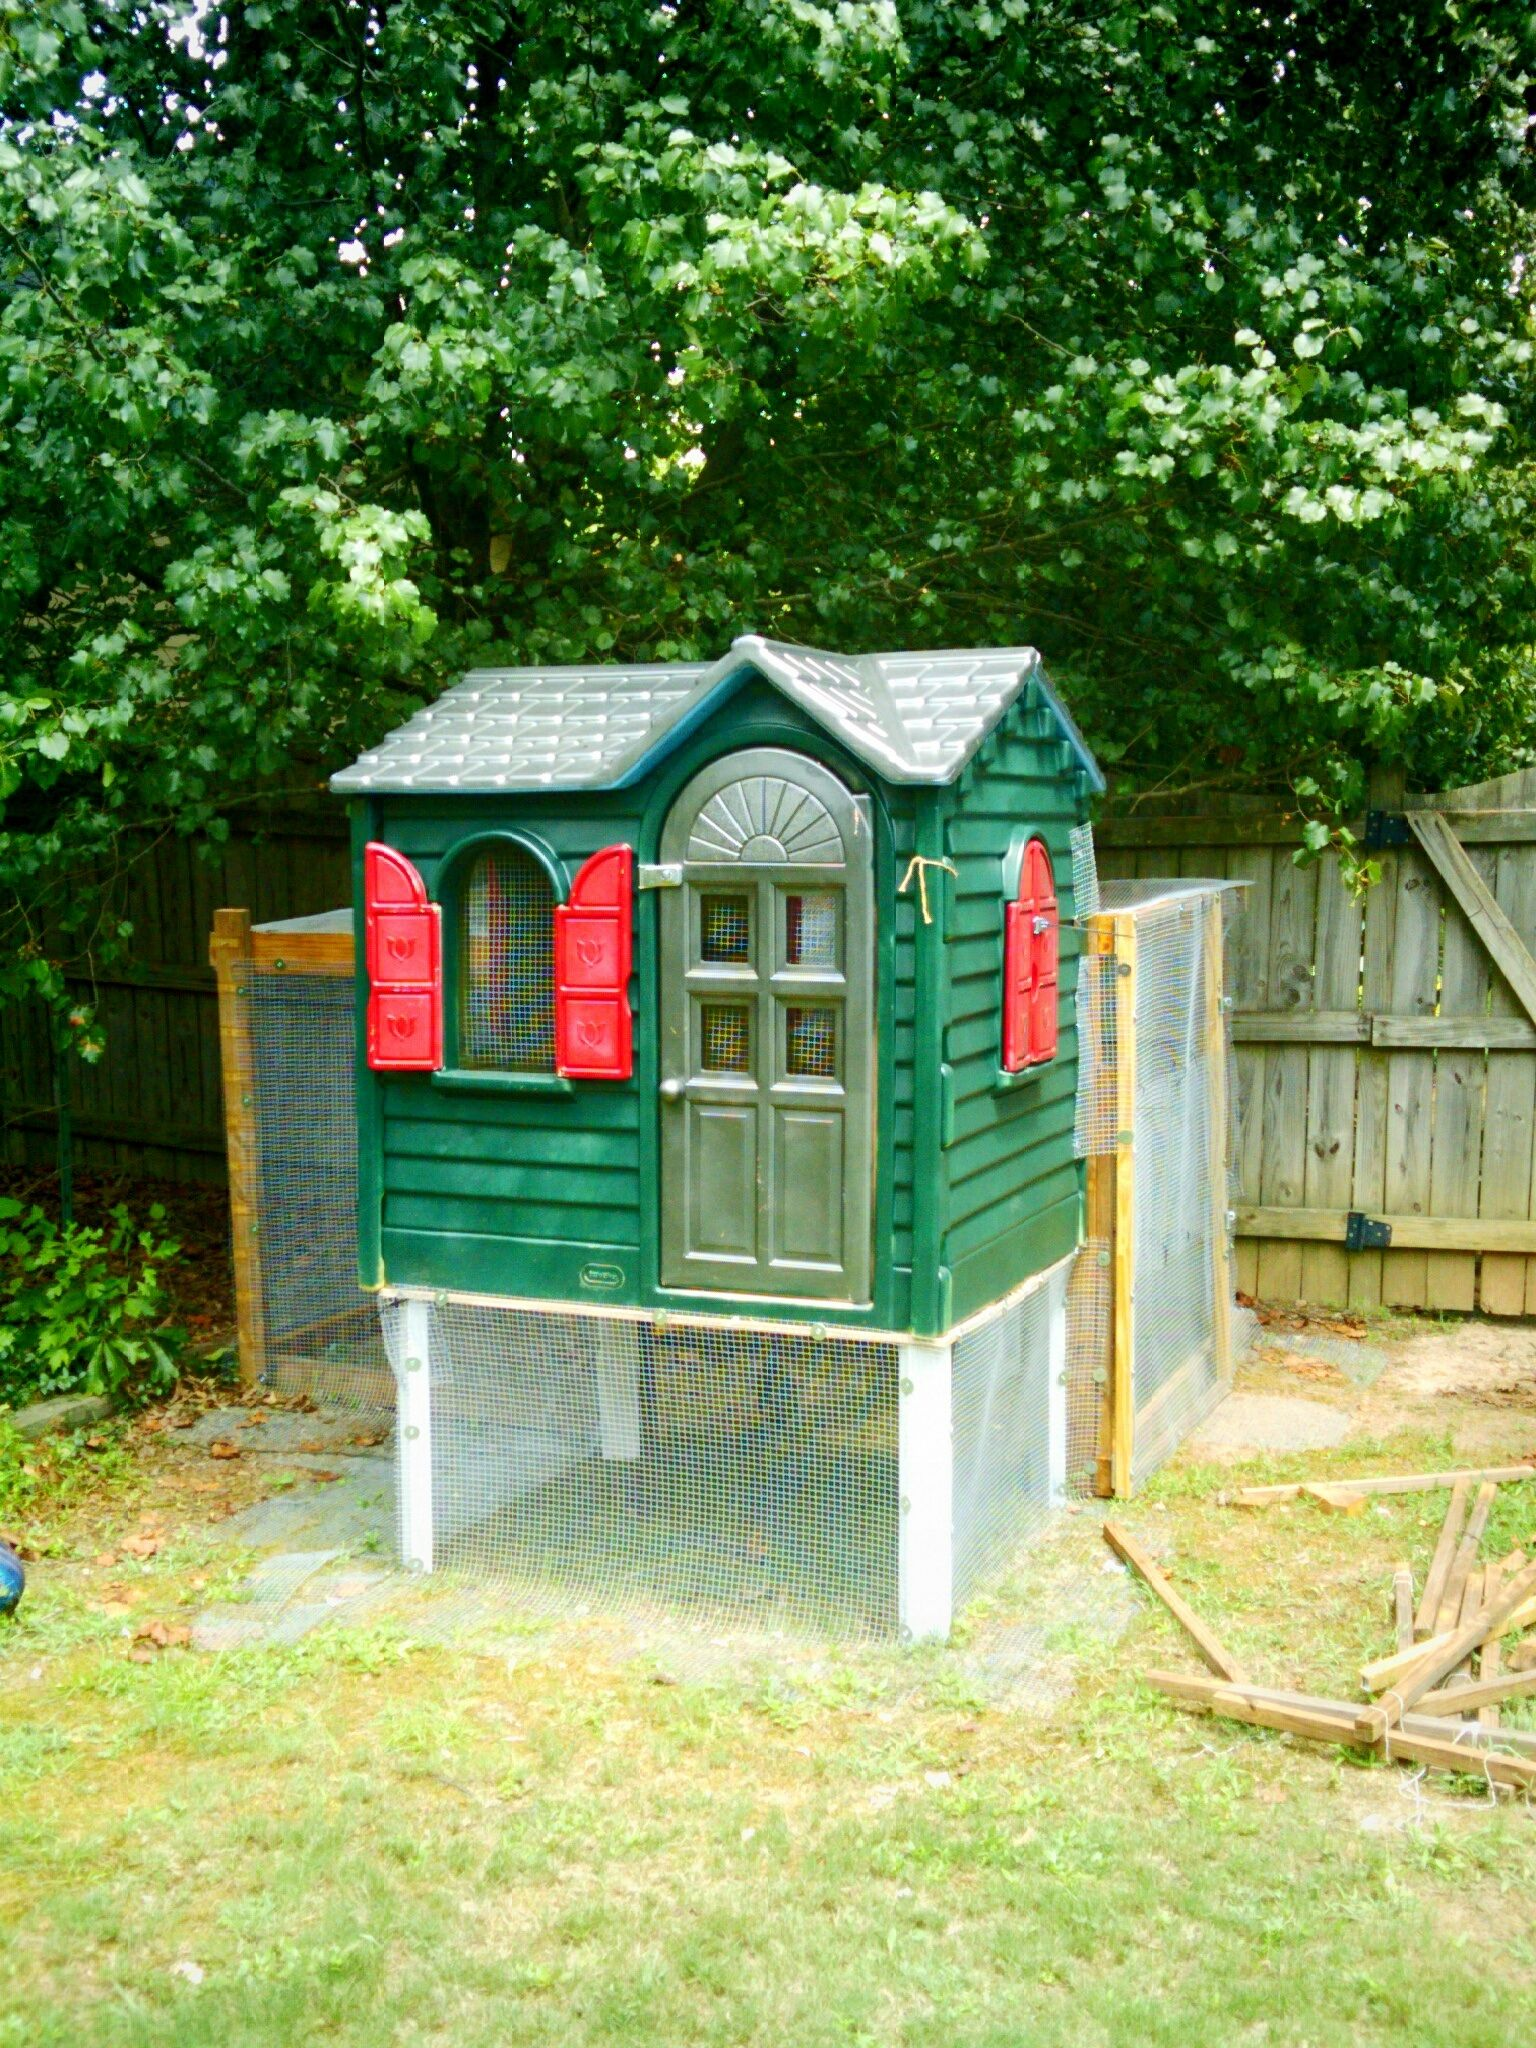 6 Ways Clever Parents Have Transformed This Classic Little Tikes Playhouse Chicken Diy Little Tikes Playhouse Chickens Backyard